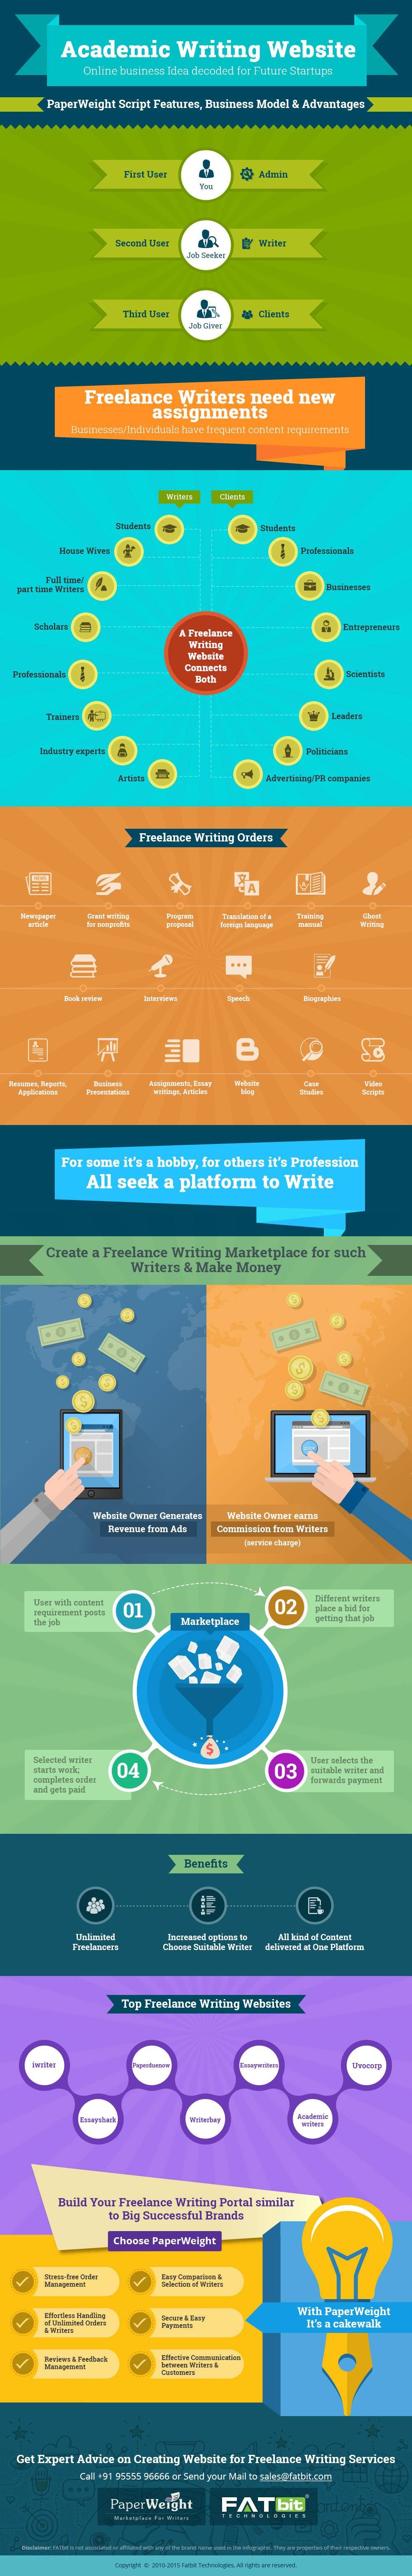 A Marketplace for Freelance Writers Makes Up for Good Business Proposition